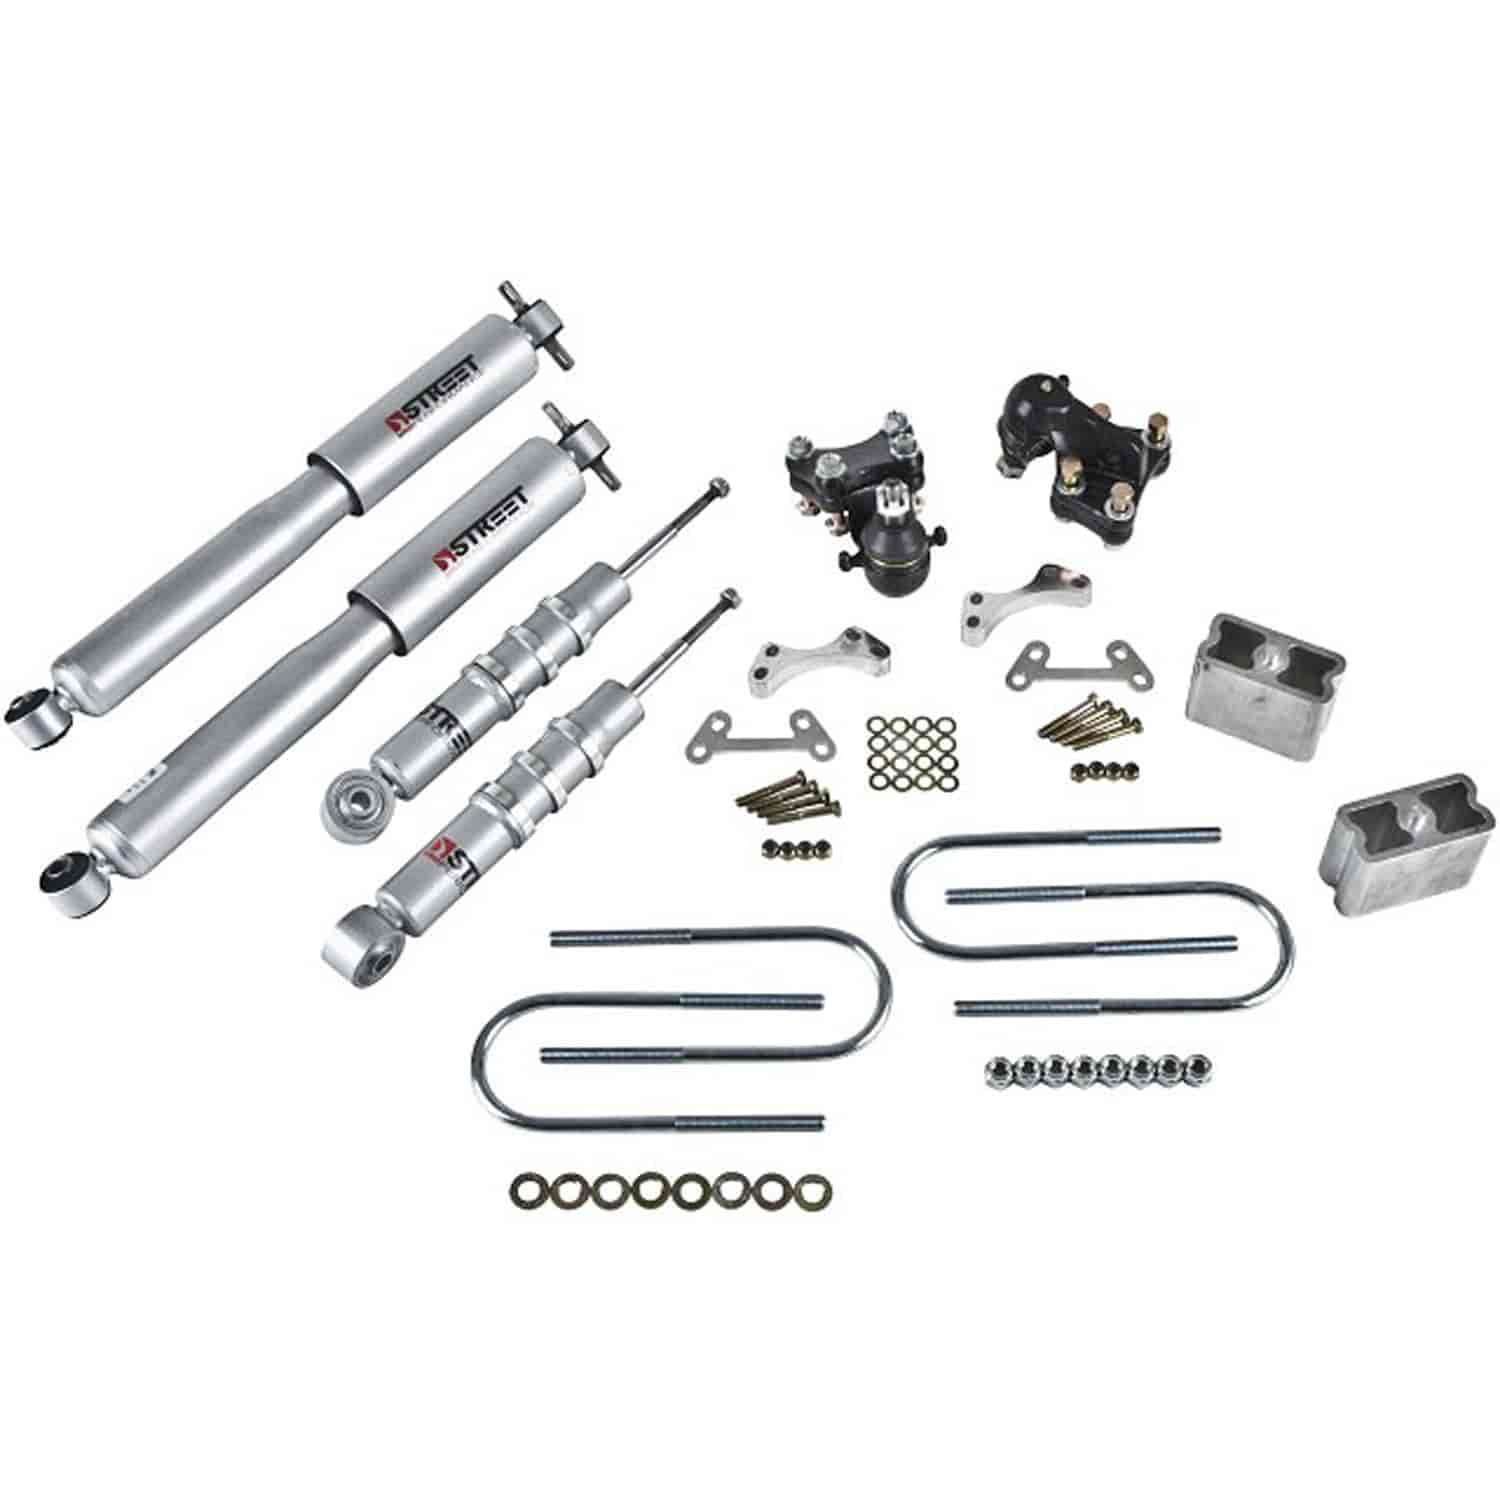 Belltech 603SP: Complete Lowering Kit for 2004-2012 Chevy Colorado/GMC Canyon | JEGS